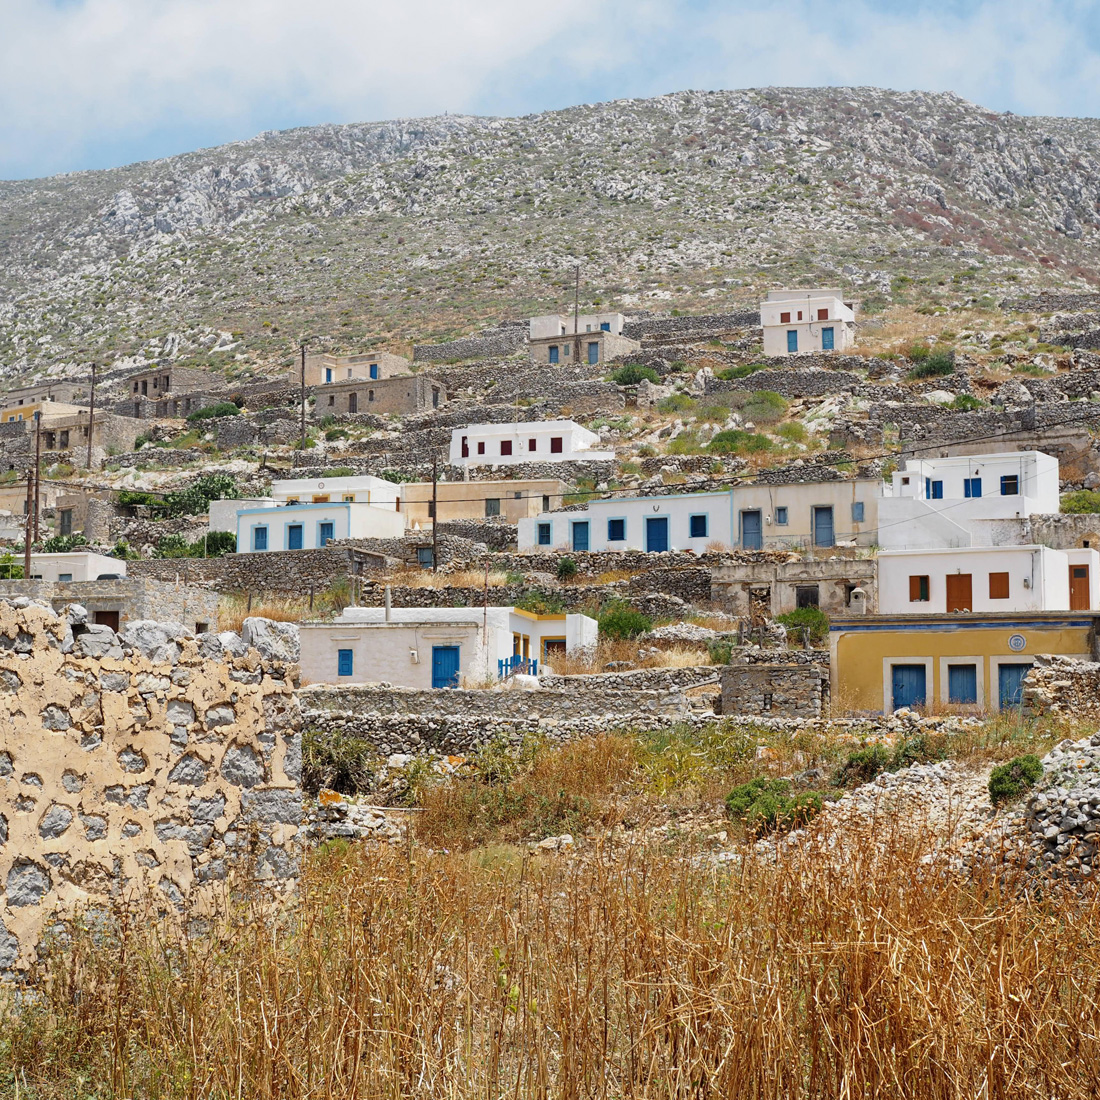 Olympos, Karpathos and the north of Karpathos